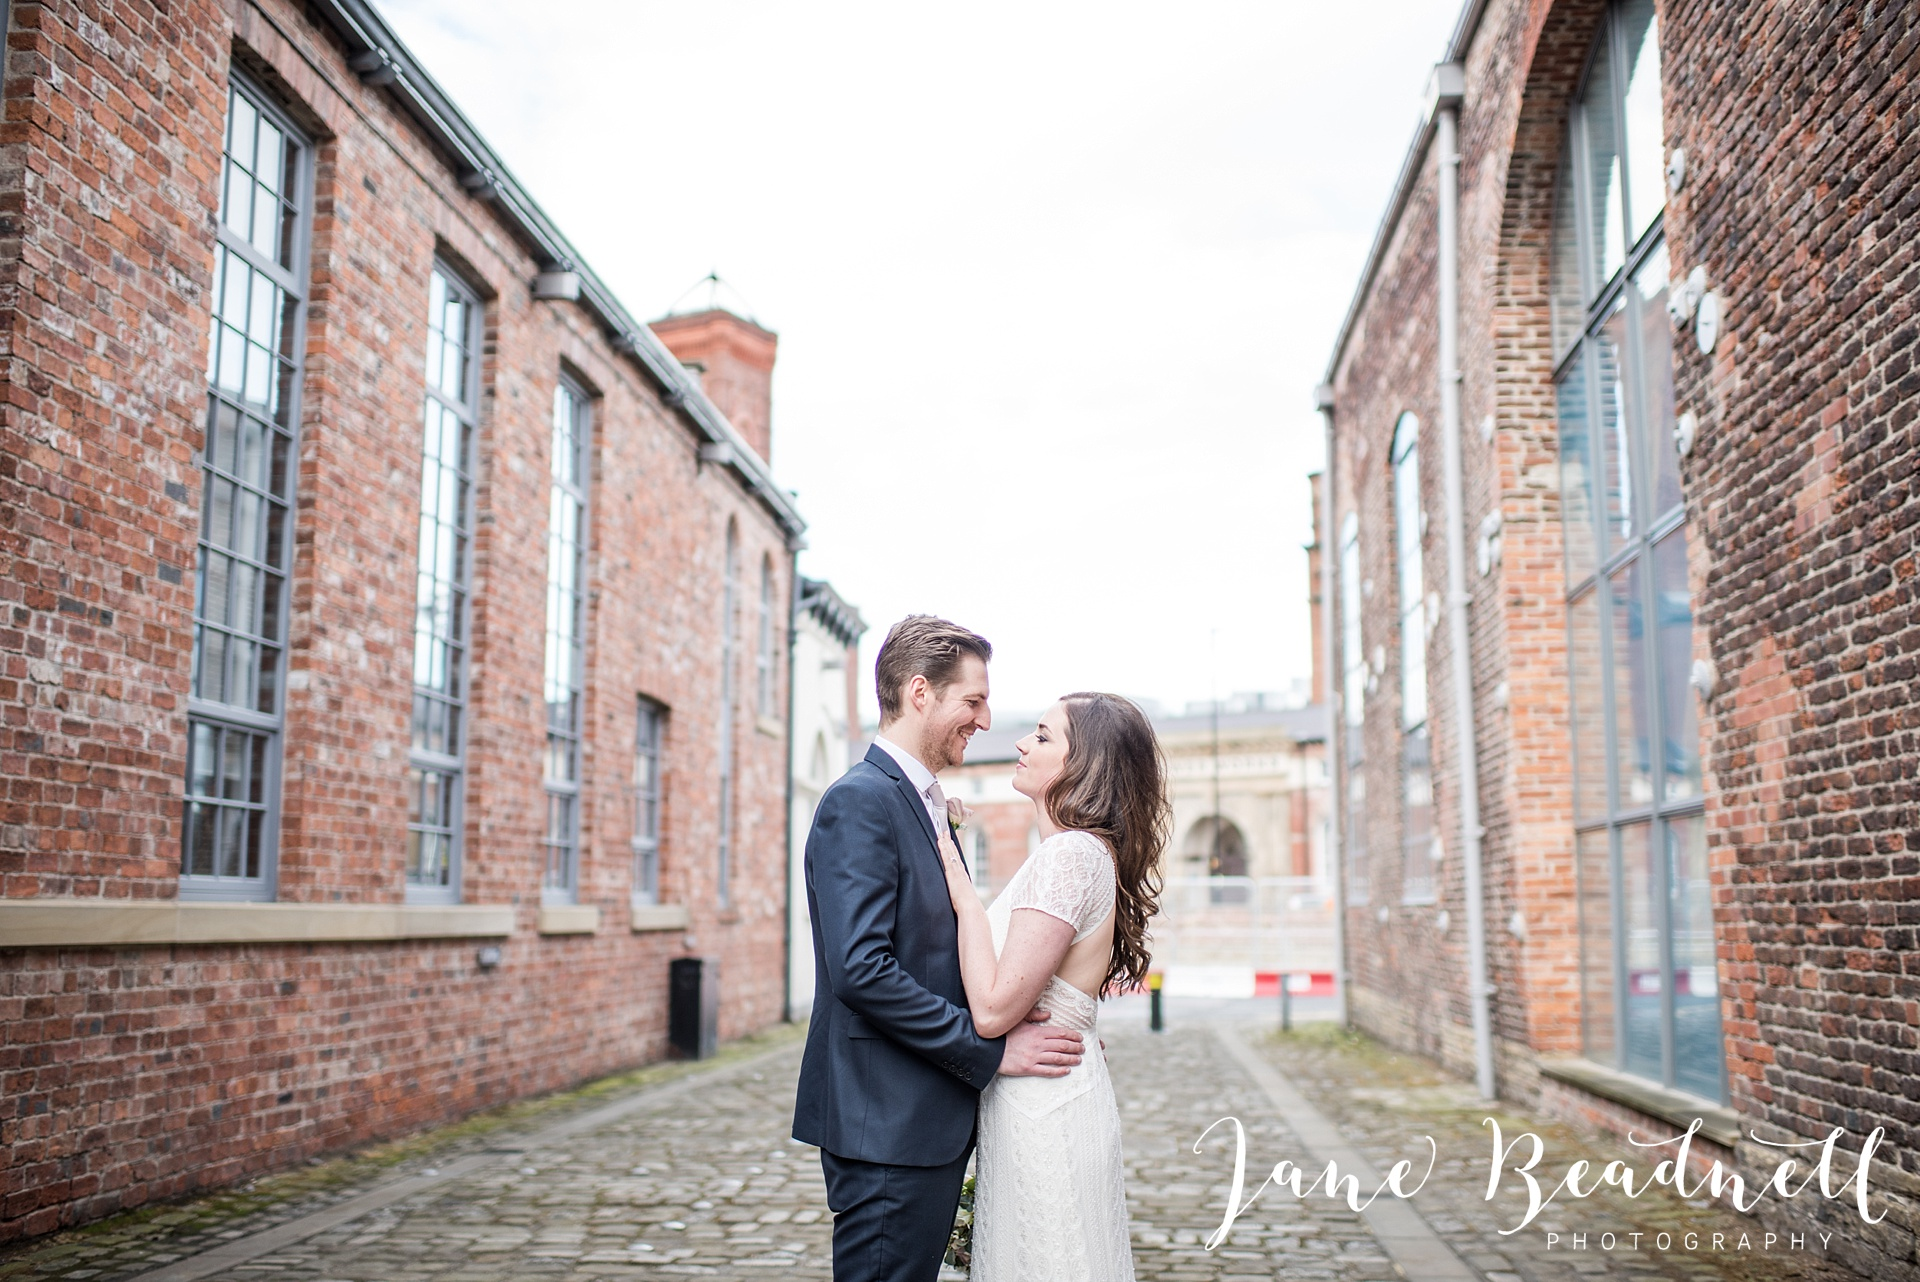 Wedding photography Cross Keys Leeds Wedding Jane Beadnell Photography_0101